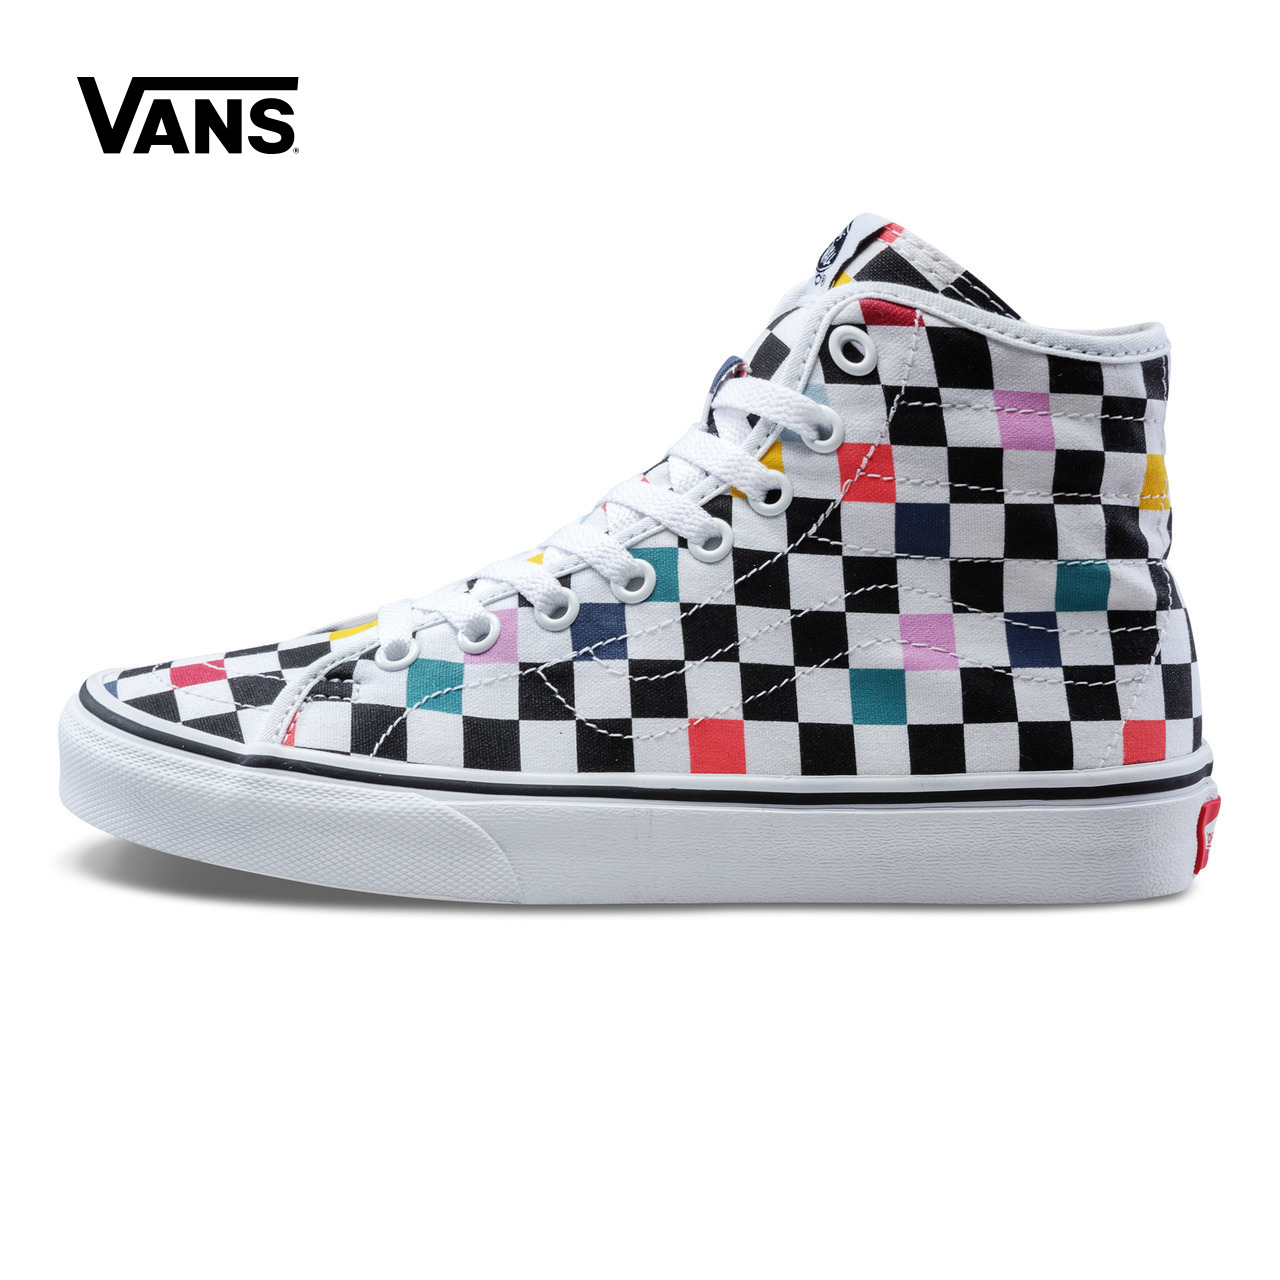 1487e9ed09 Original New Arrival Vans Womens Classic SK8-Hi Decon Skateboarding Shoes  Sneakers Canvas Comfortable Sport Outdoor Good Quality